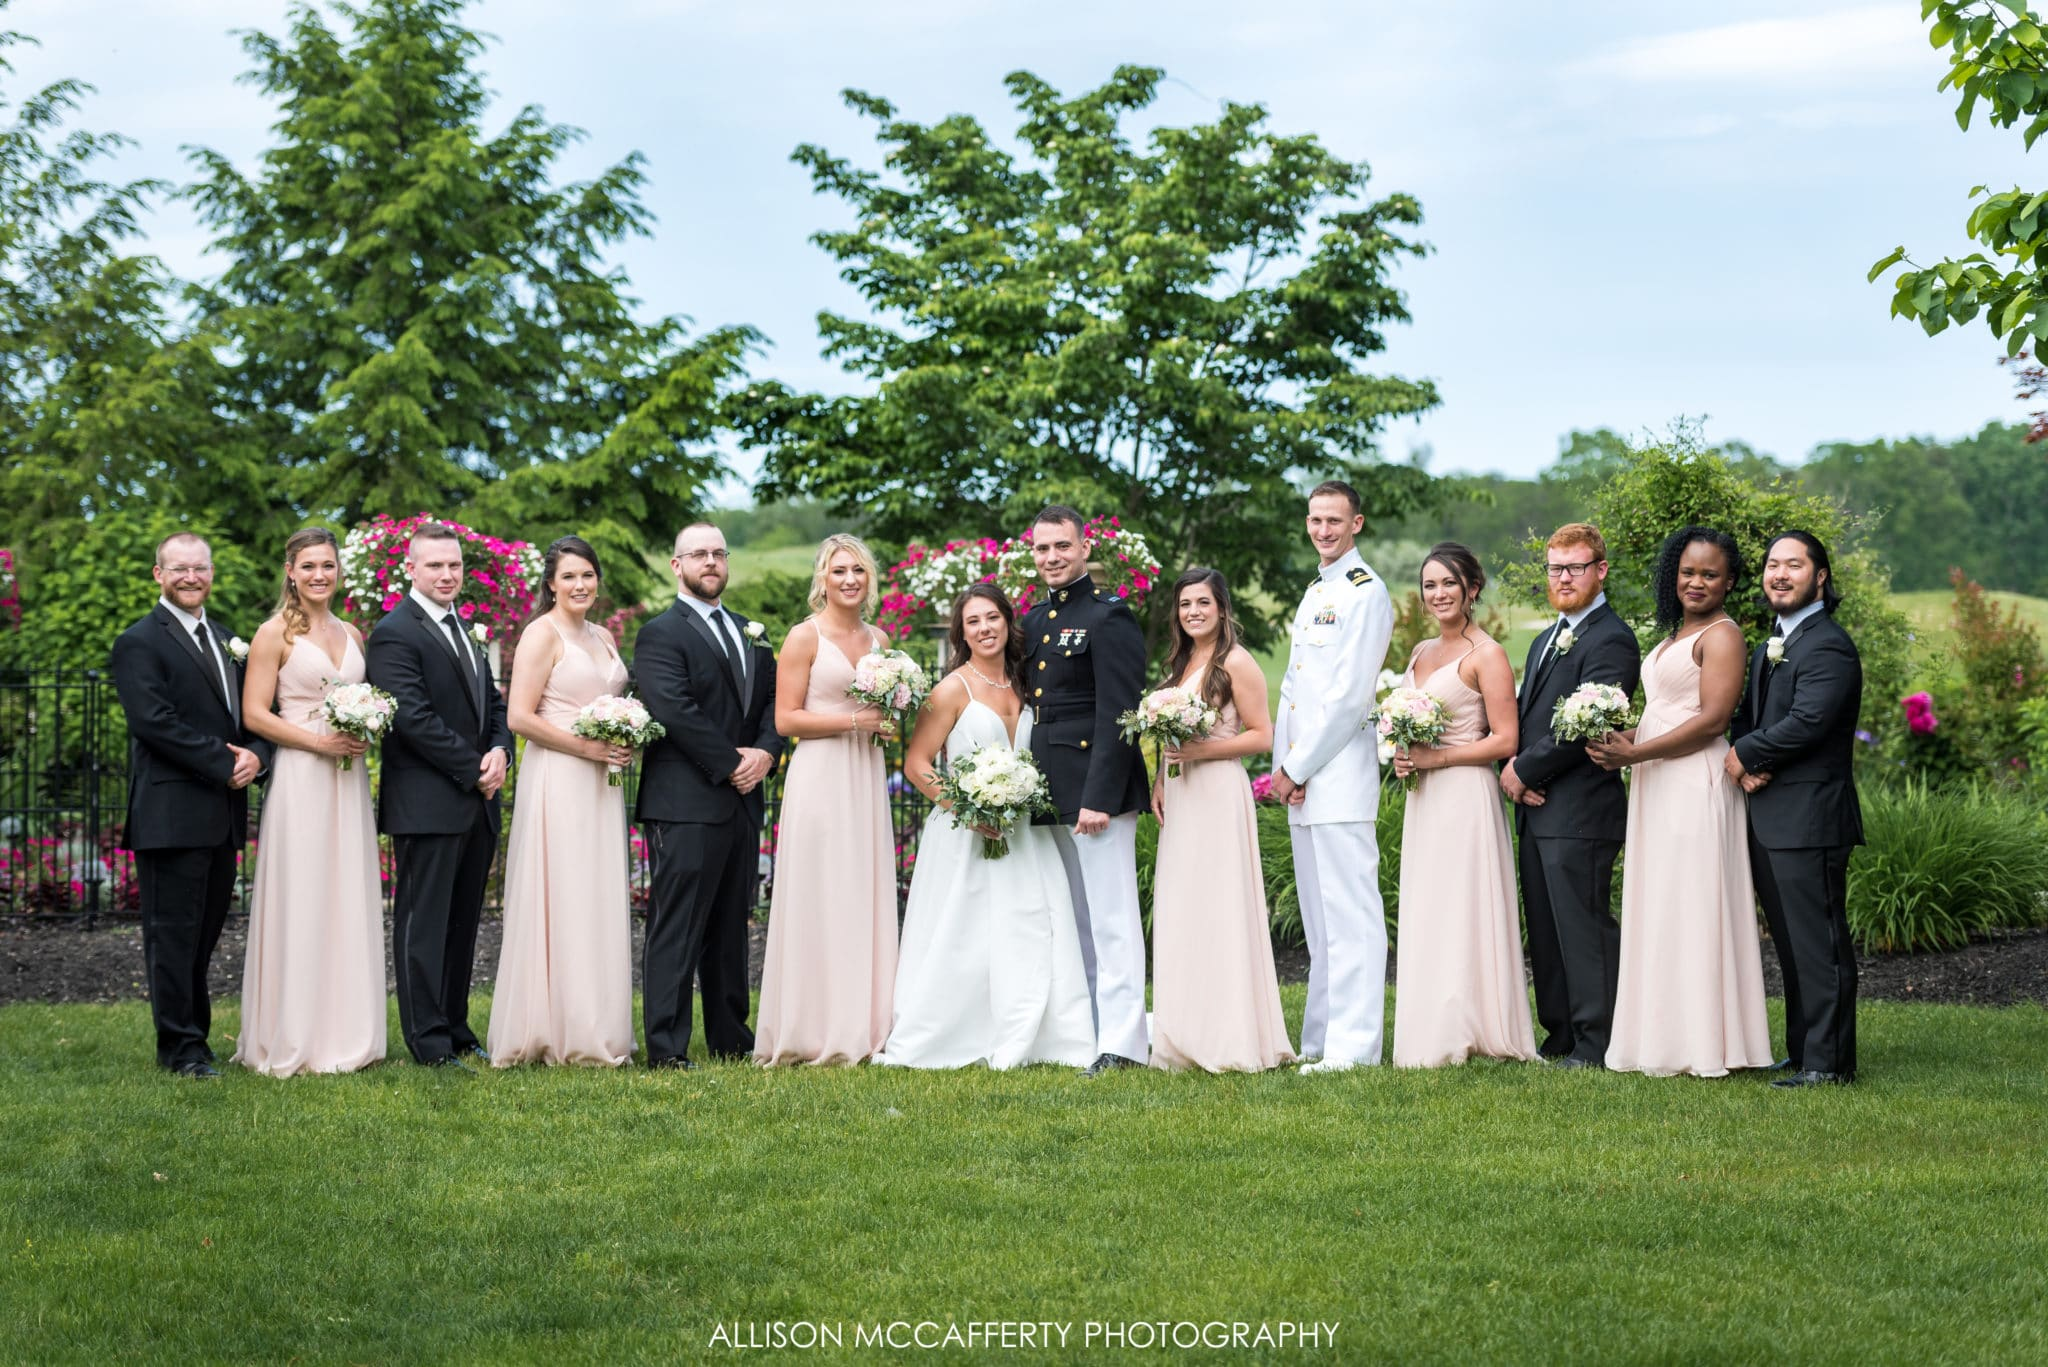 Full bridal party photo at scotland run